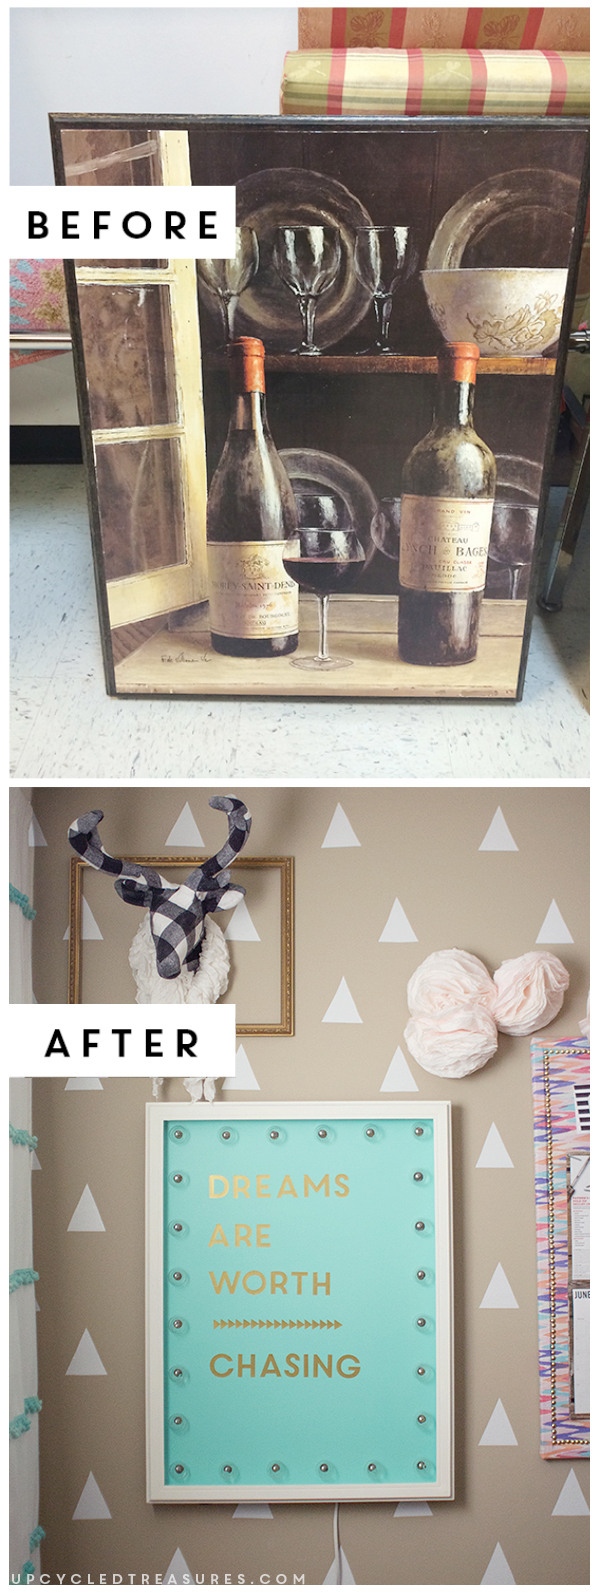 DIY-marquee-sign-using-globe-string-lights-upcycledtreasures